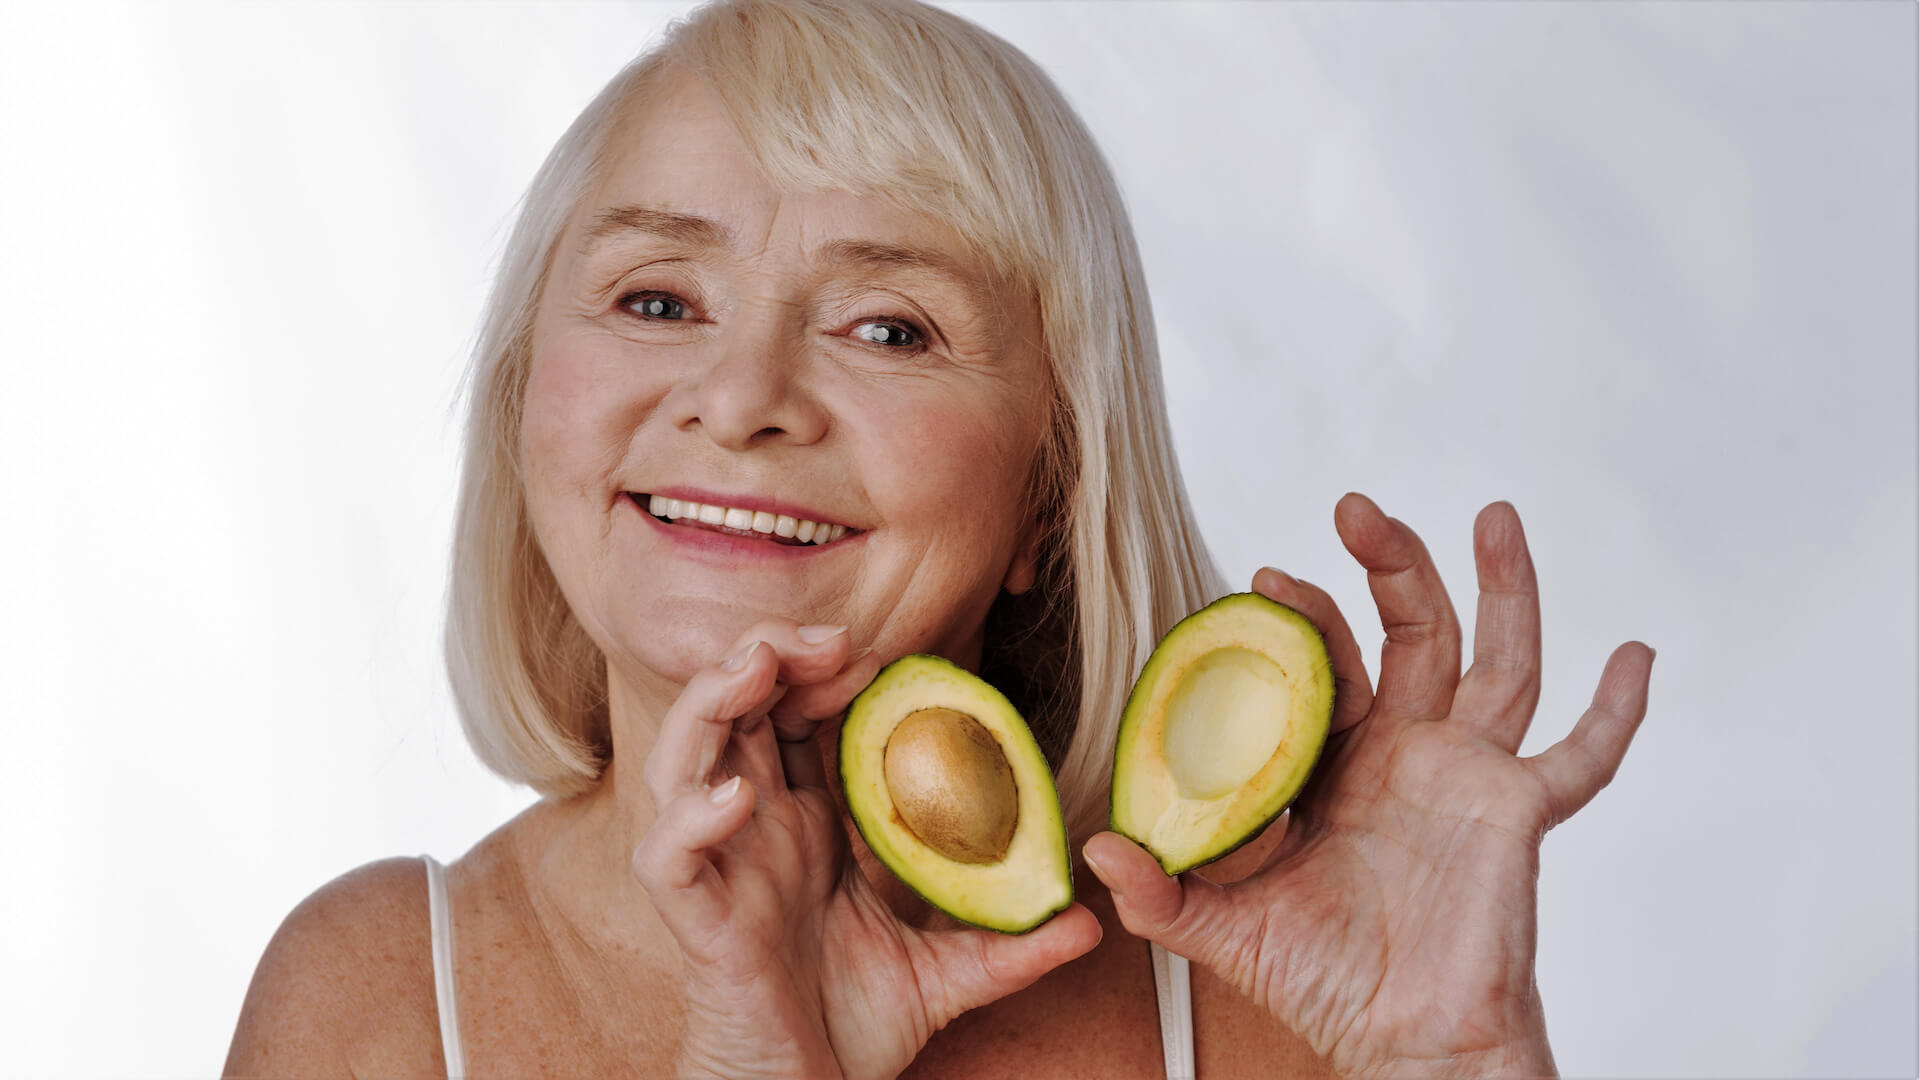 Cheerful happy woman showing you avocado halves